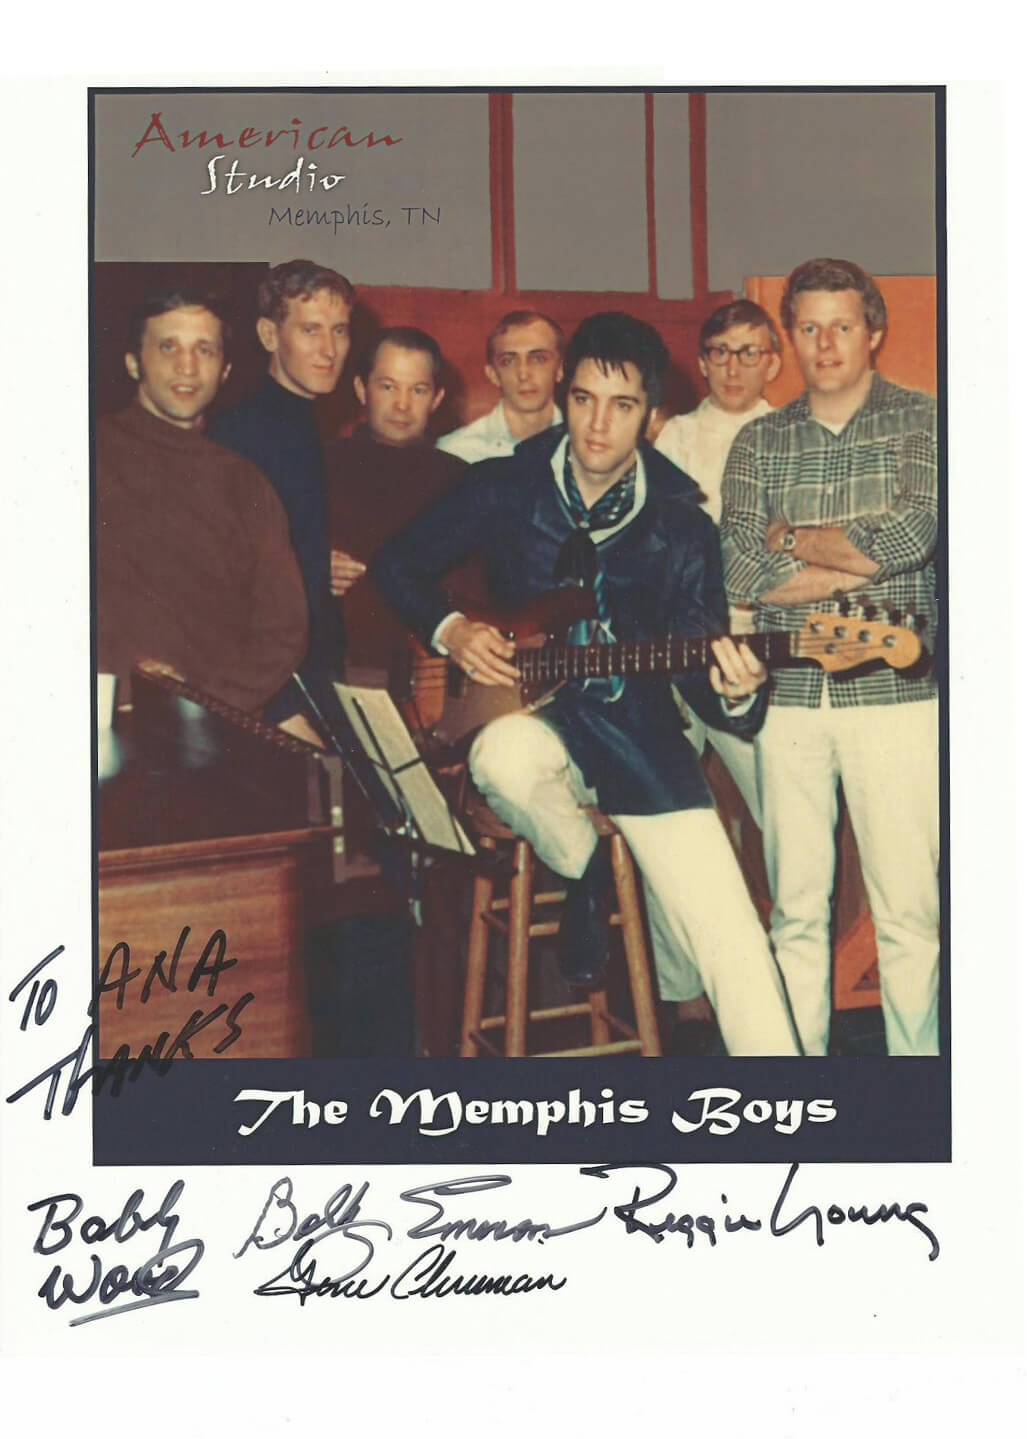 Signatures of the Memphis Boys on a polaroid picture with Elvis Presley